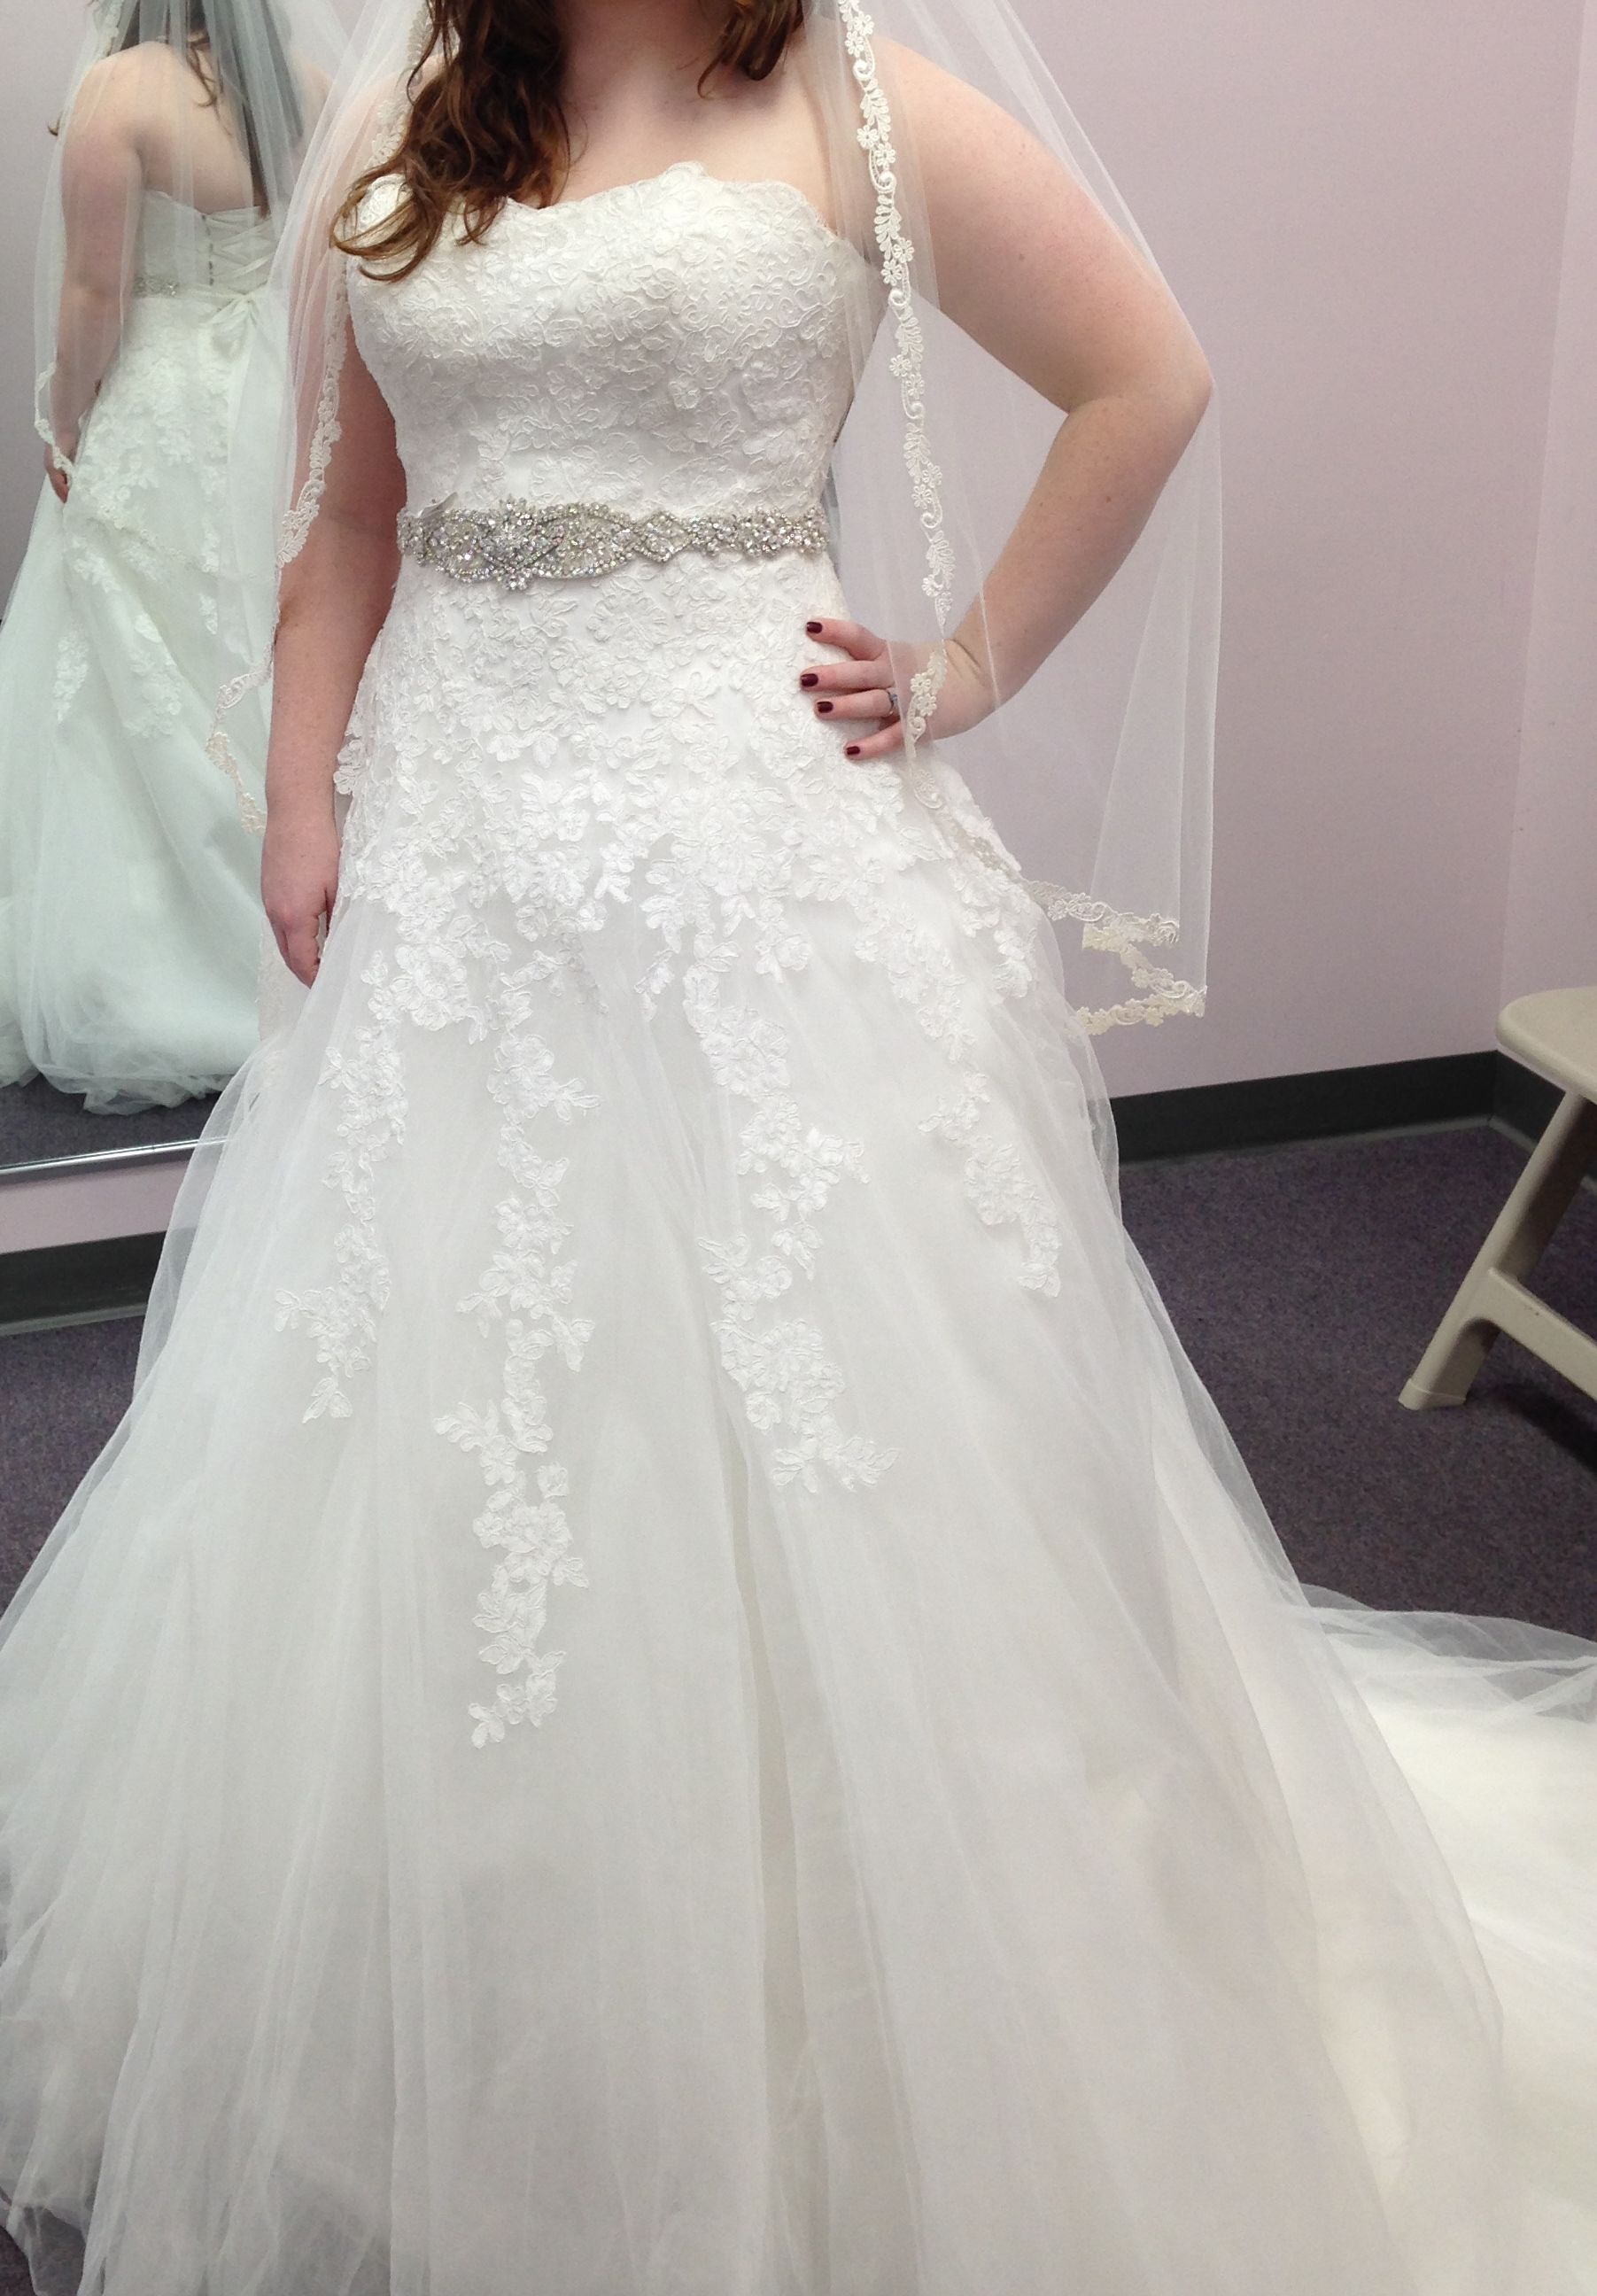 This Lace Wedding Gown Has A Nice Rhinestone Belt That Is Detachable The Strapless Line Style Works Great On Many Figures Contact Us Directly To See How